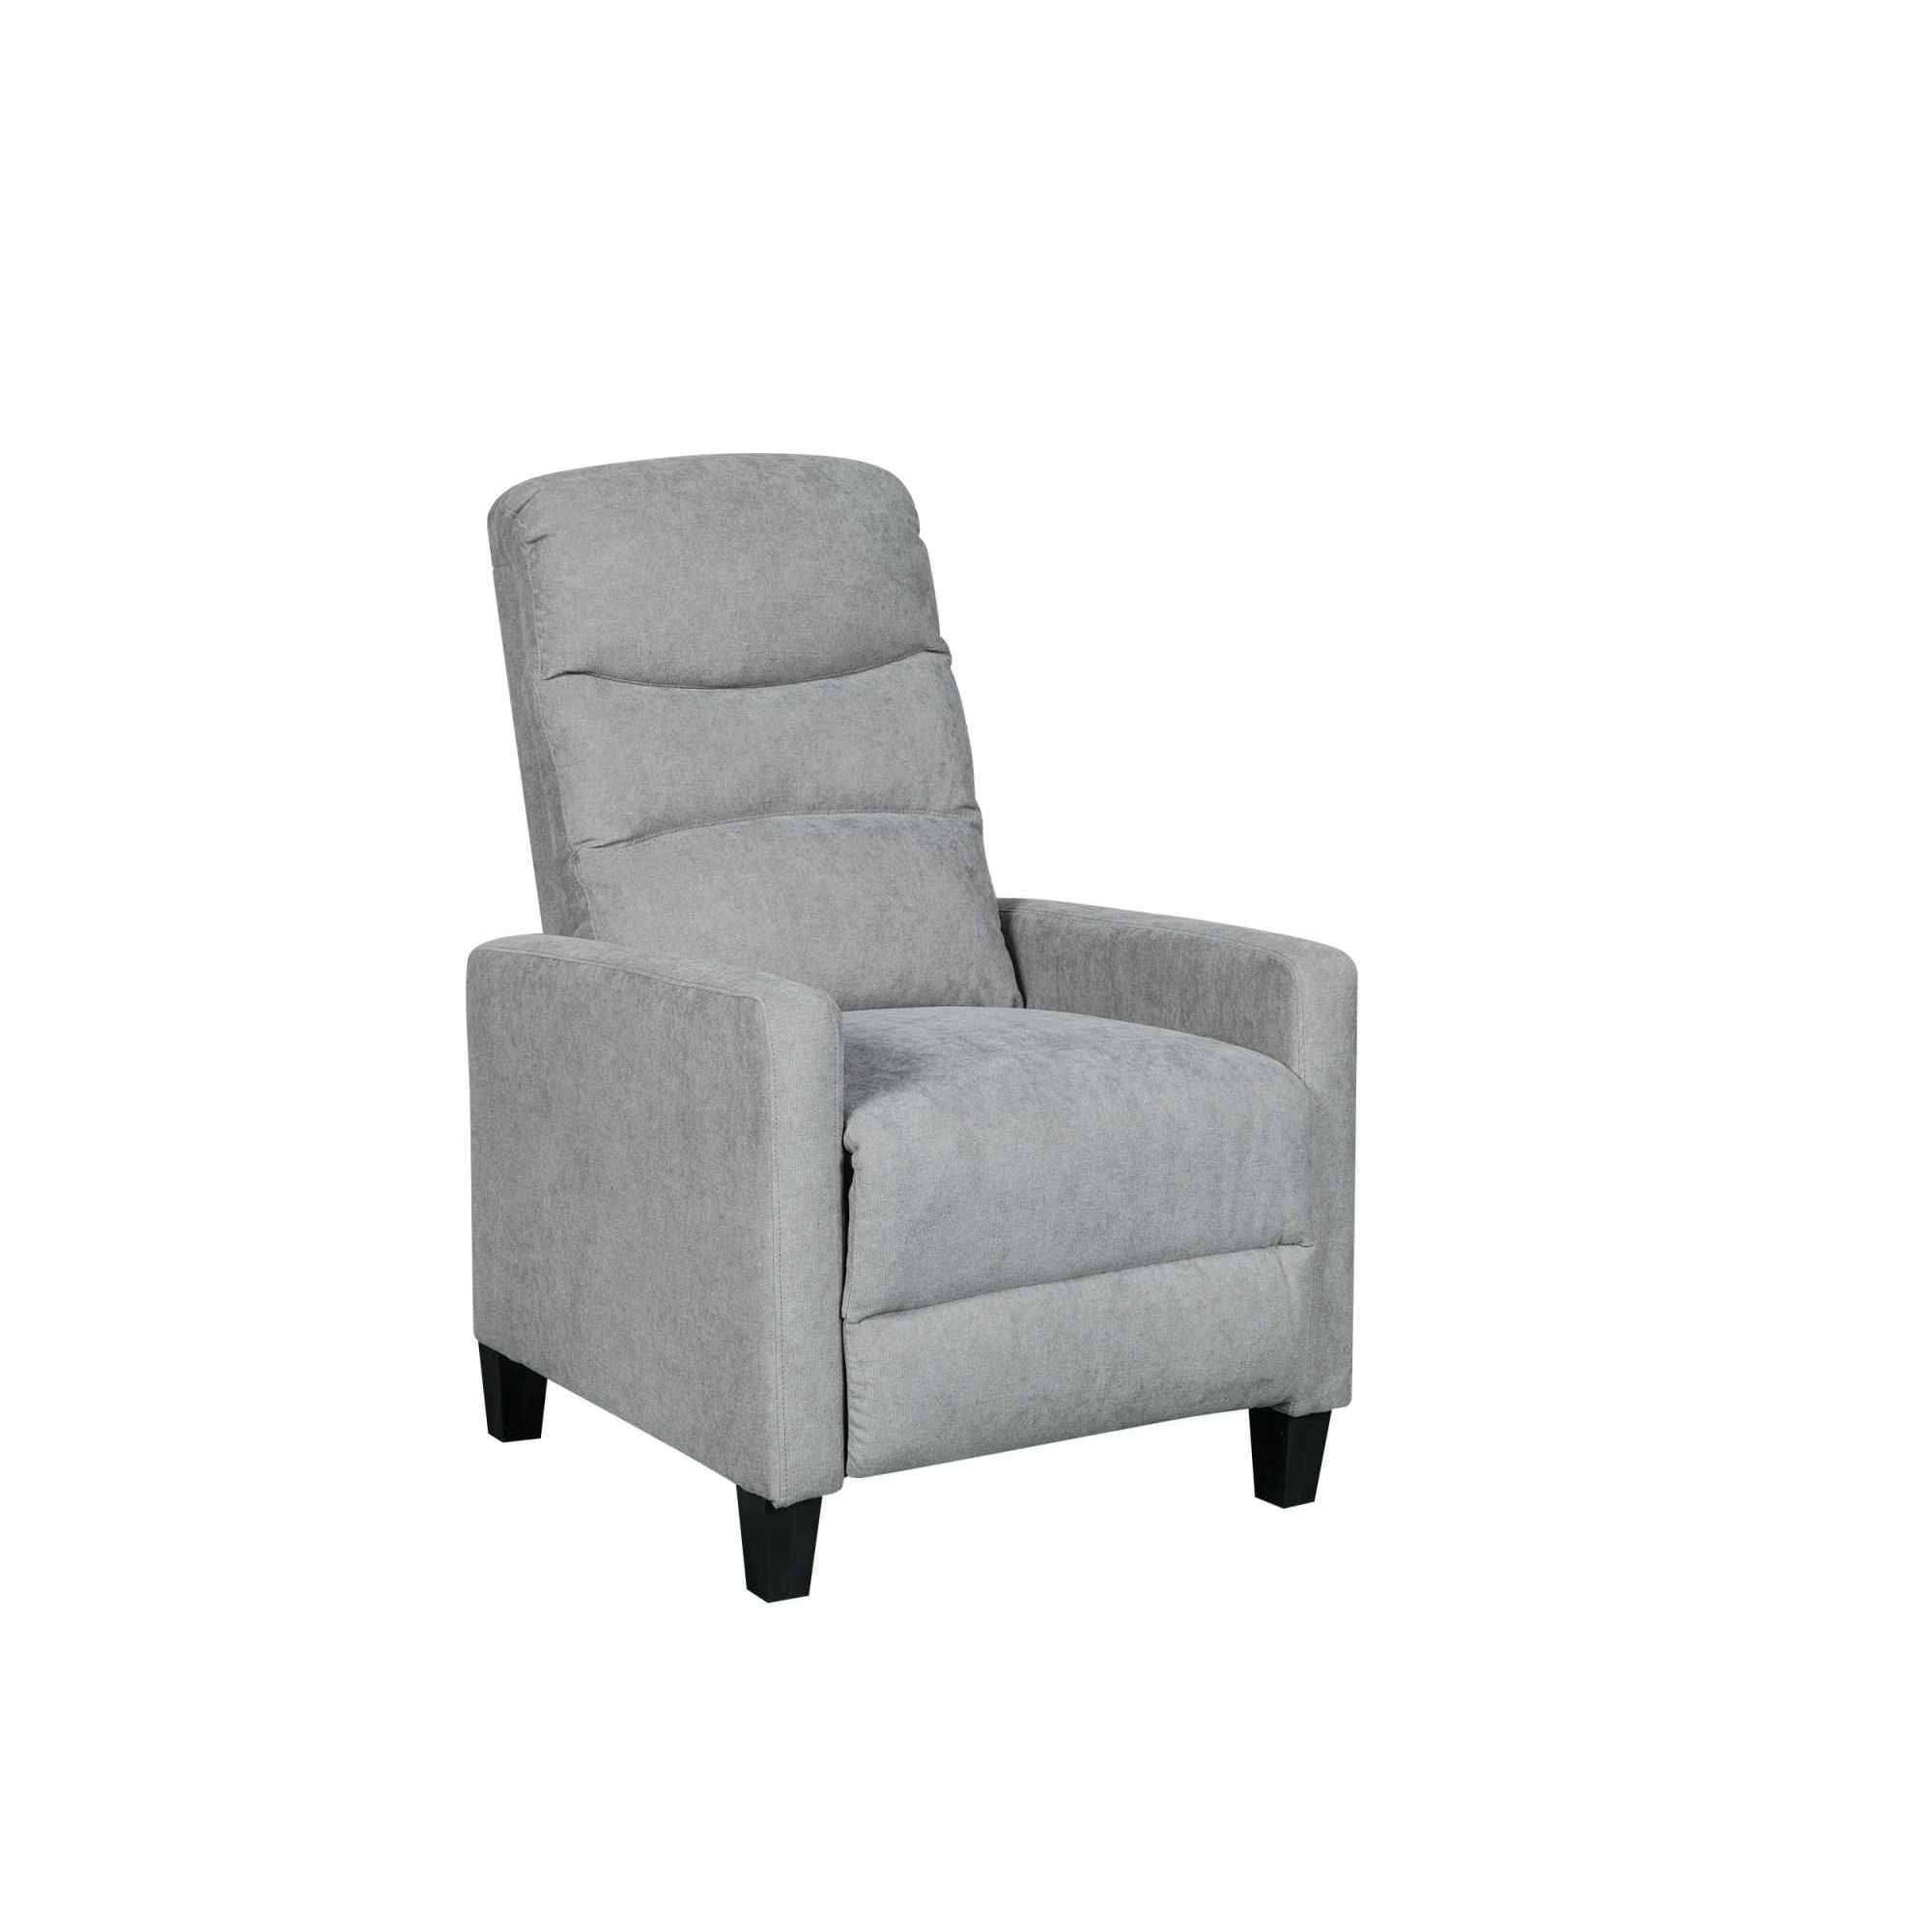 deco in paris fauteuil relax en tissu gris kirian kirian gris. Black Bedroom Furniture Sets. Home Design Ideas